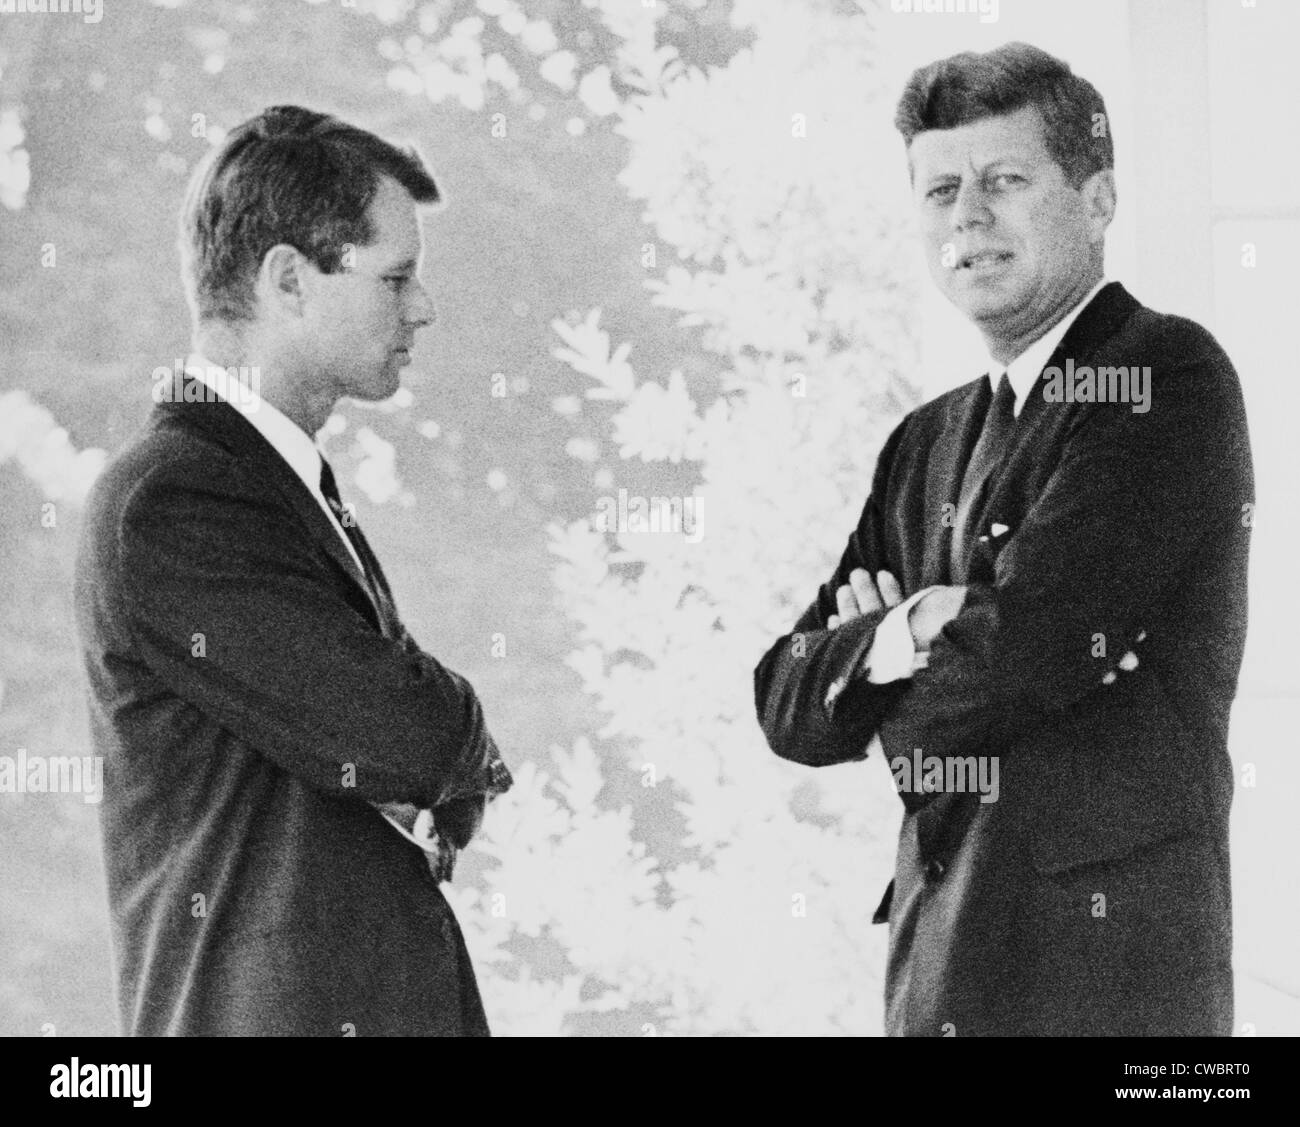 Brothers Robert F. and John F. Kennedy, portrait, standing on the White House portico. Ca. 1962. - Stock Image